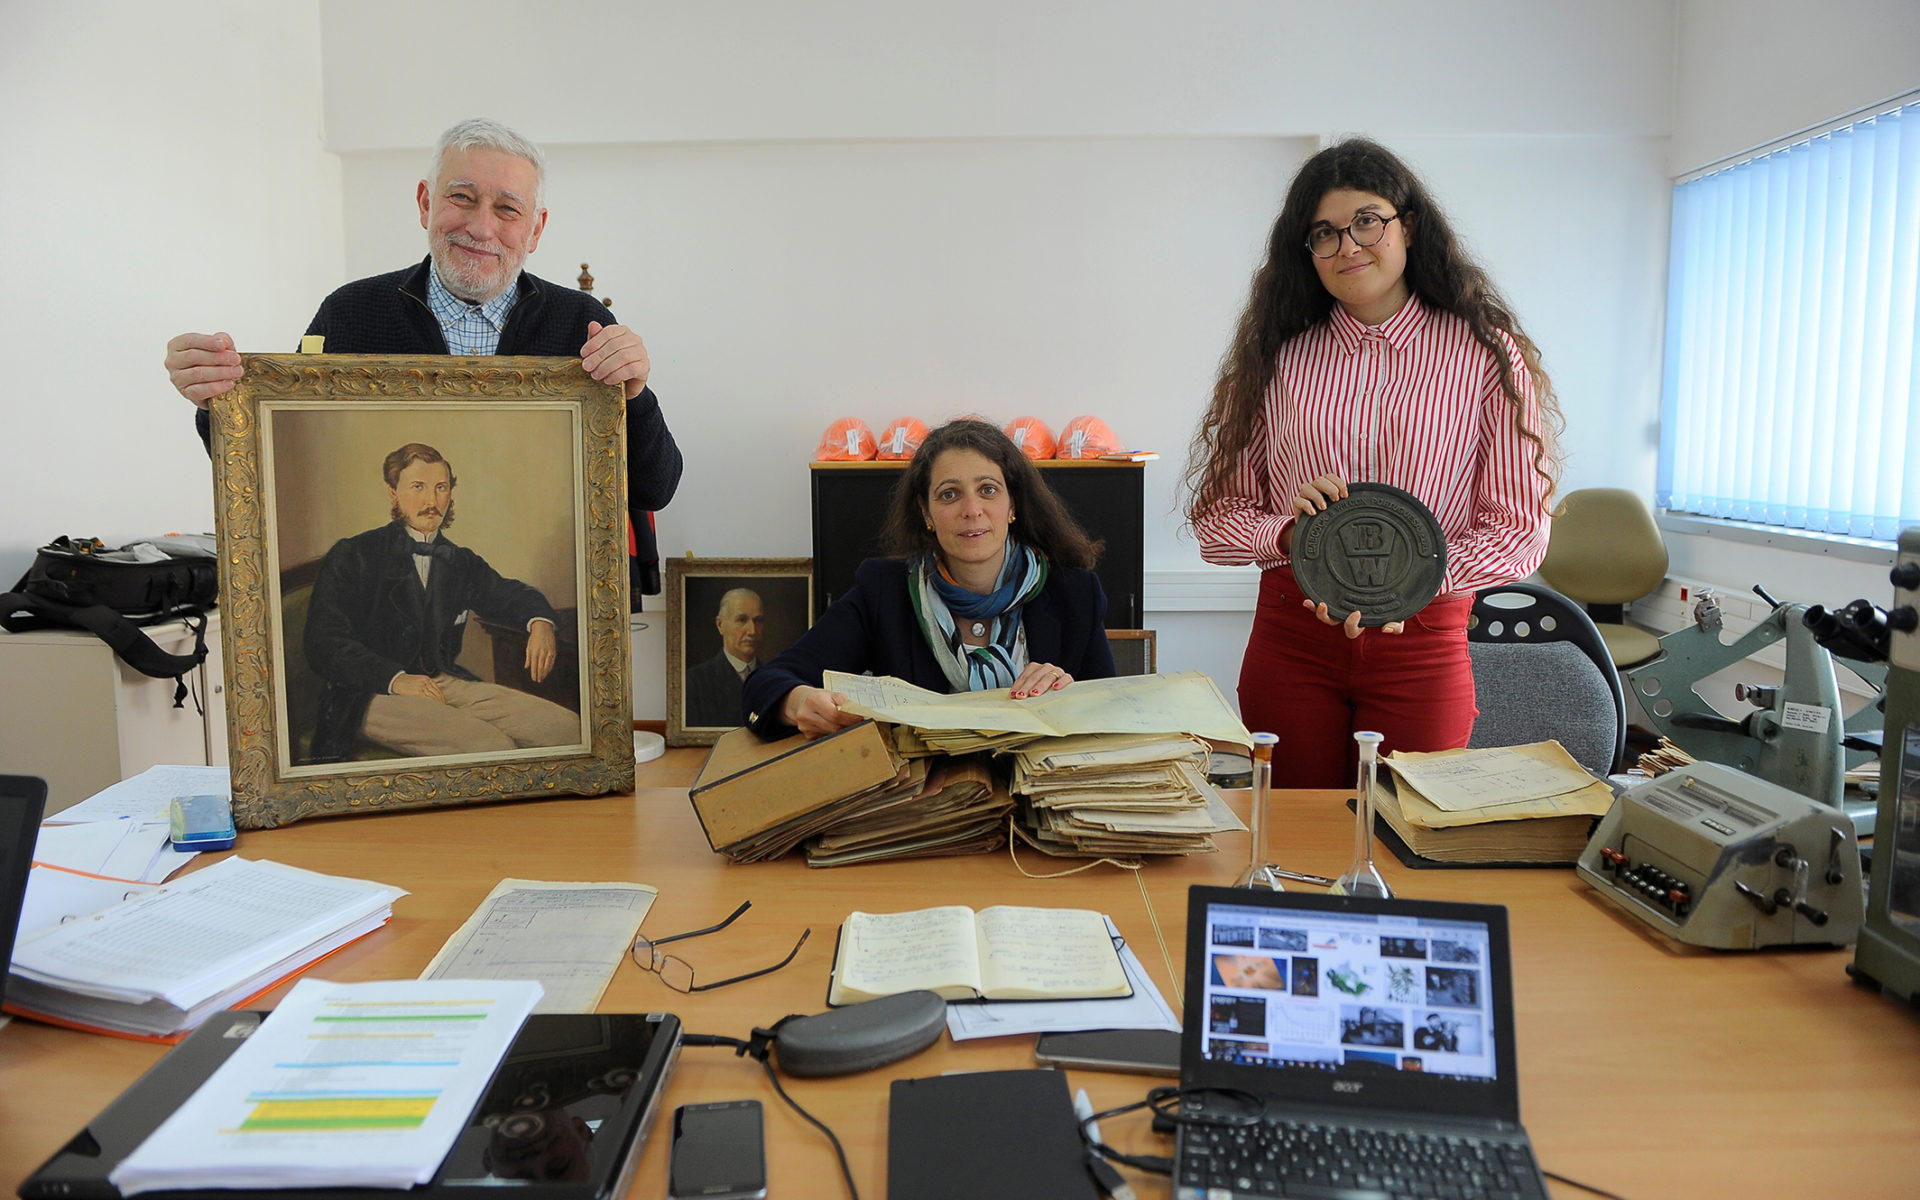 Jorge Custódio, Sofia Costa Macedo and Susana Pacheco, the team of industrial archeologists who analyzed the history of Caima